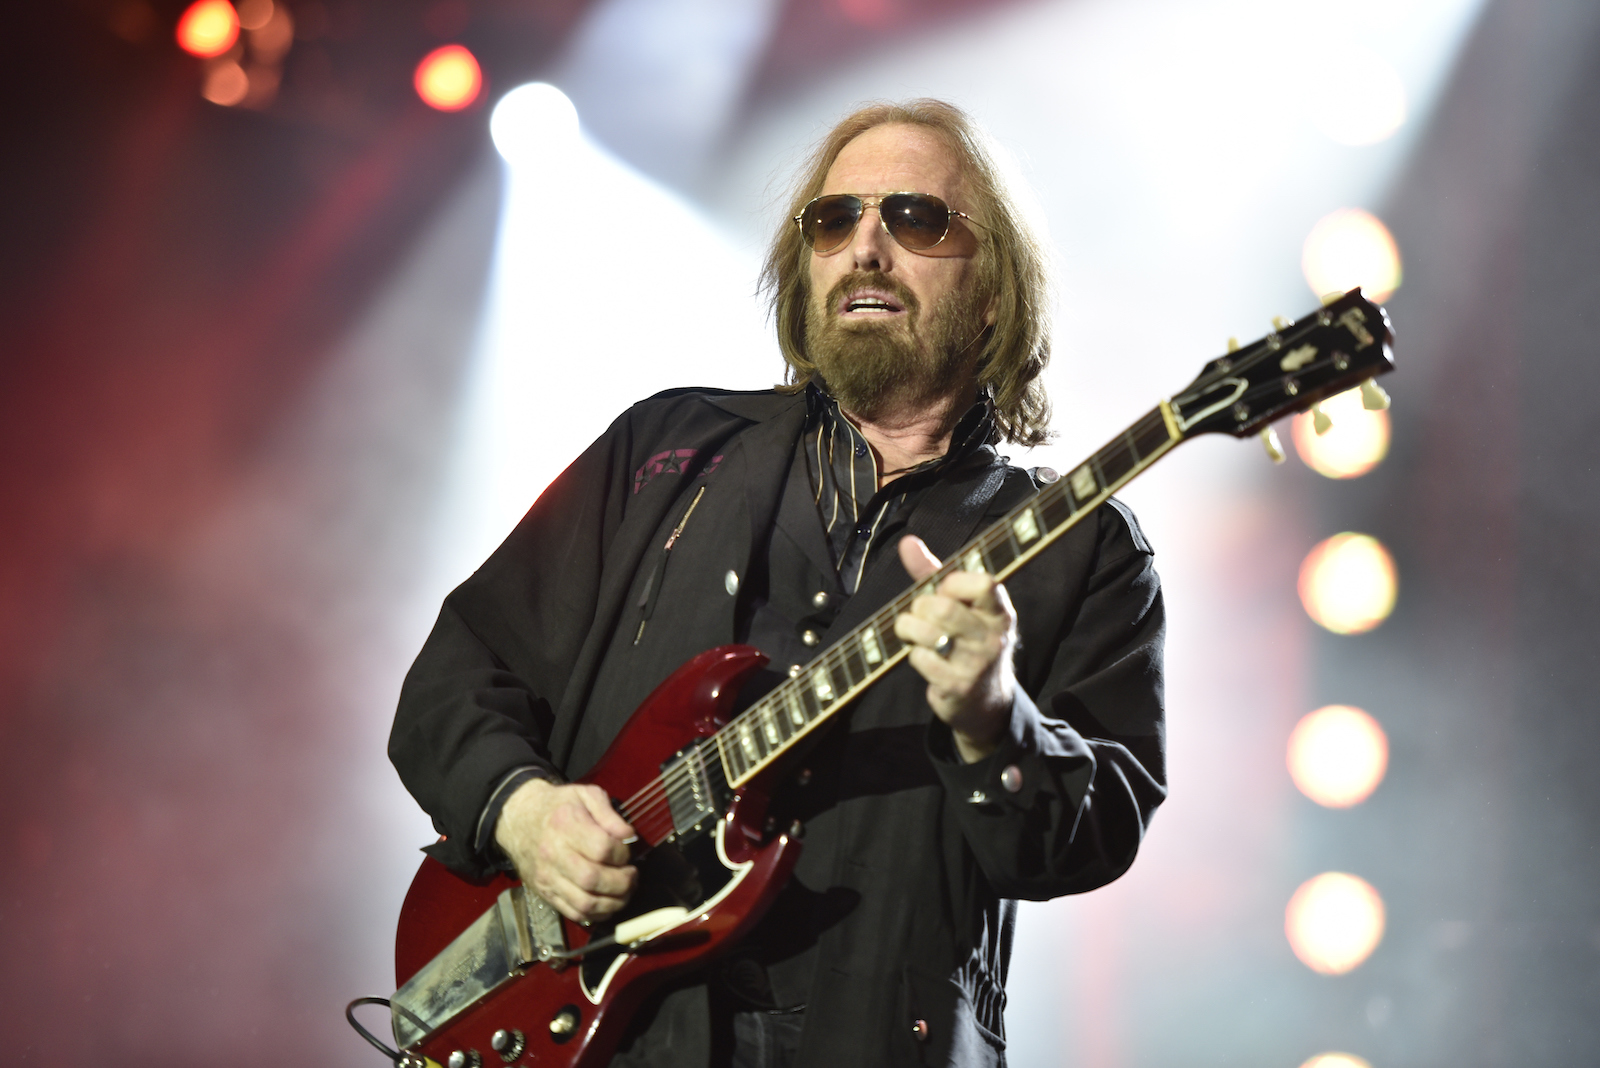 Tom Petty and the Heartbreakers perform on the 40th Anniversary Tour at Chicago's Wrigley Fieldi in 2017, in Chicago. ( Rob Grabowski/Invision/AP)